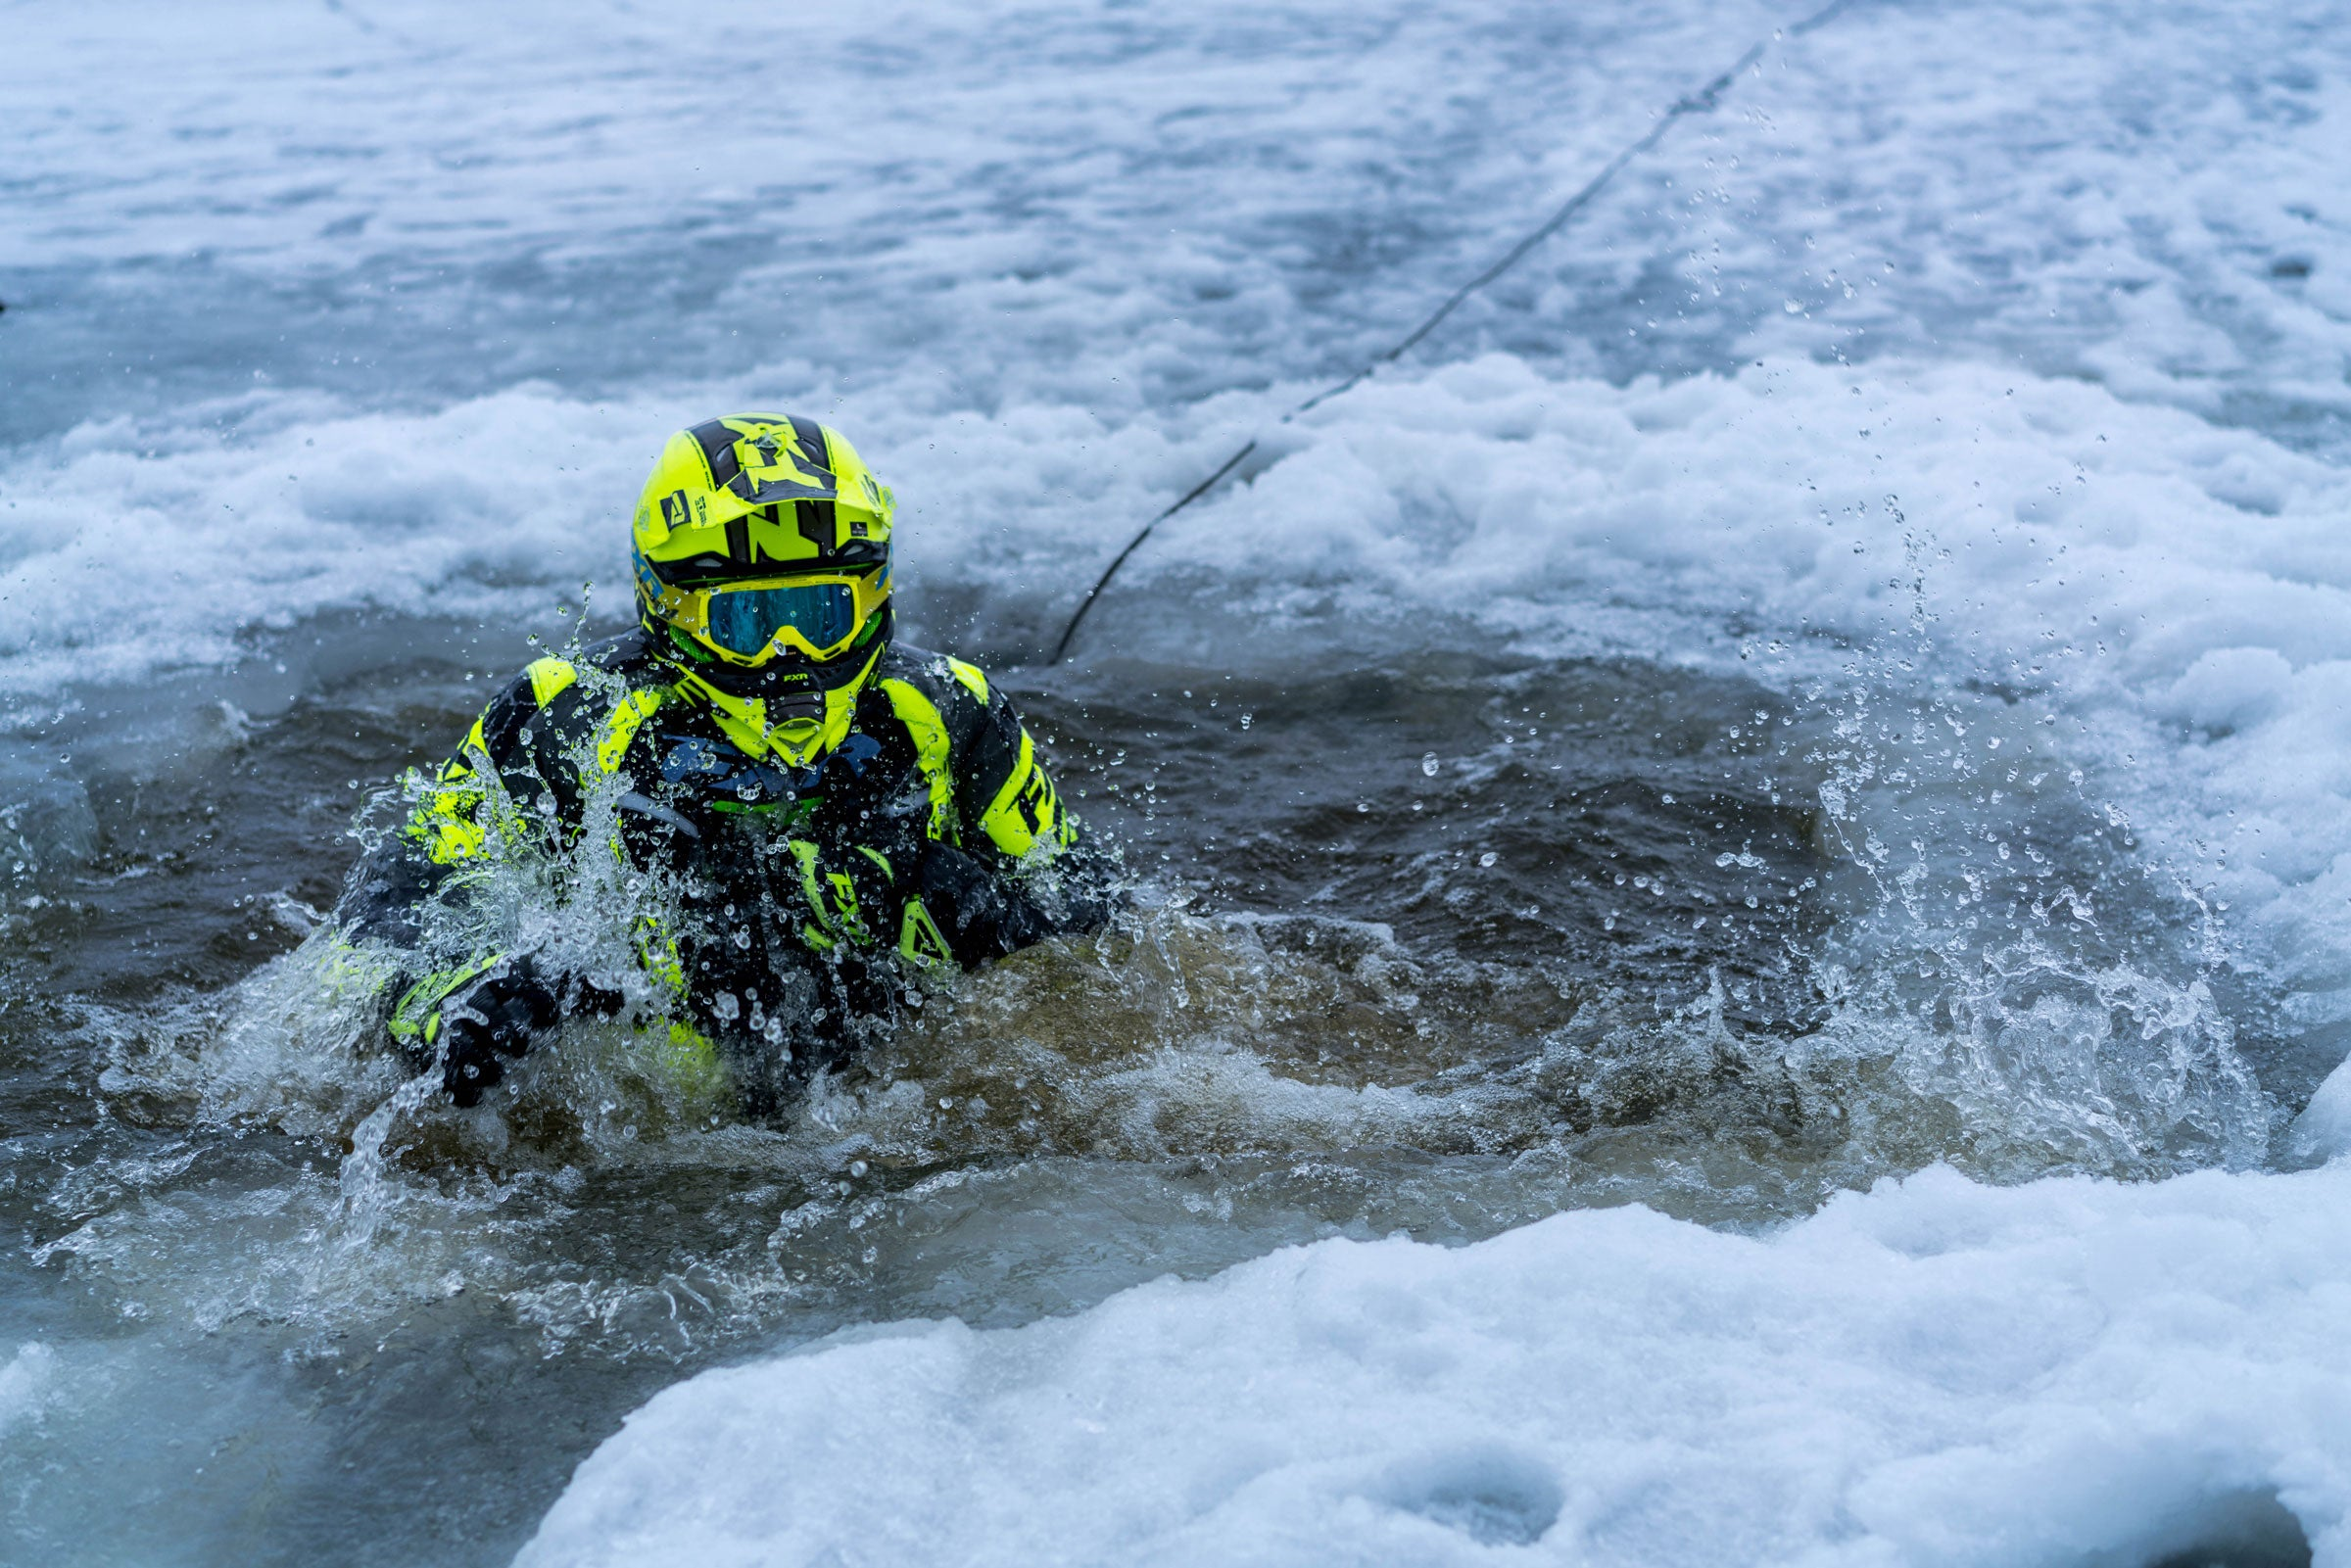 An image of a guy in FXR's F.A.S.T suit demonstrating the floatation assist feature